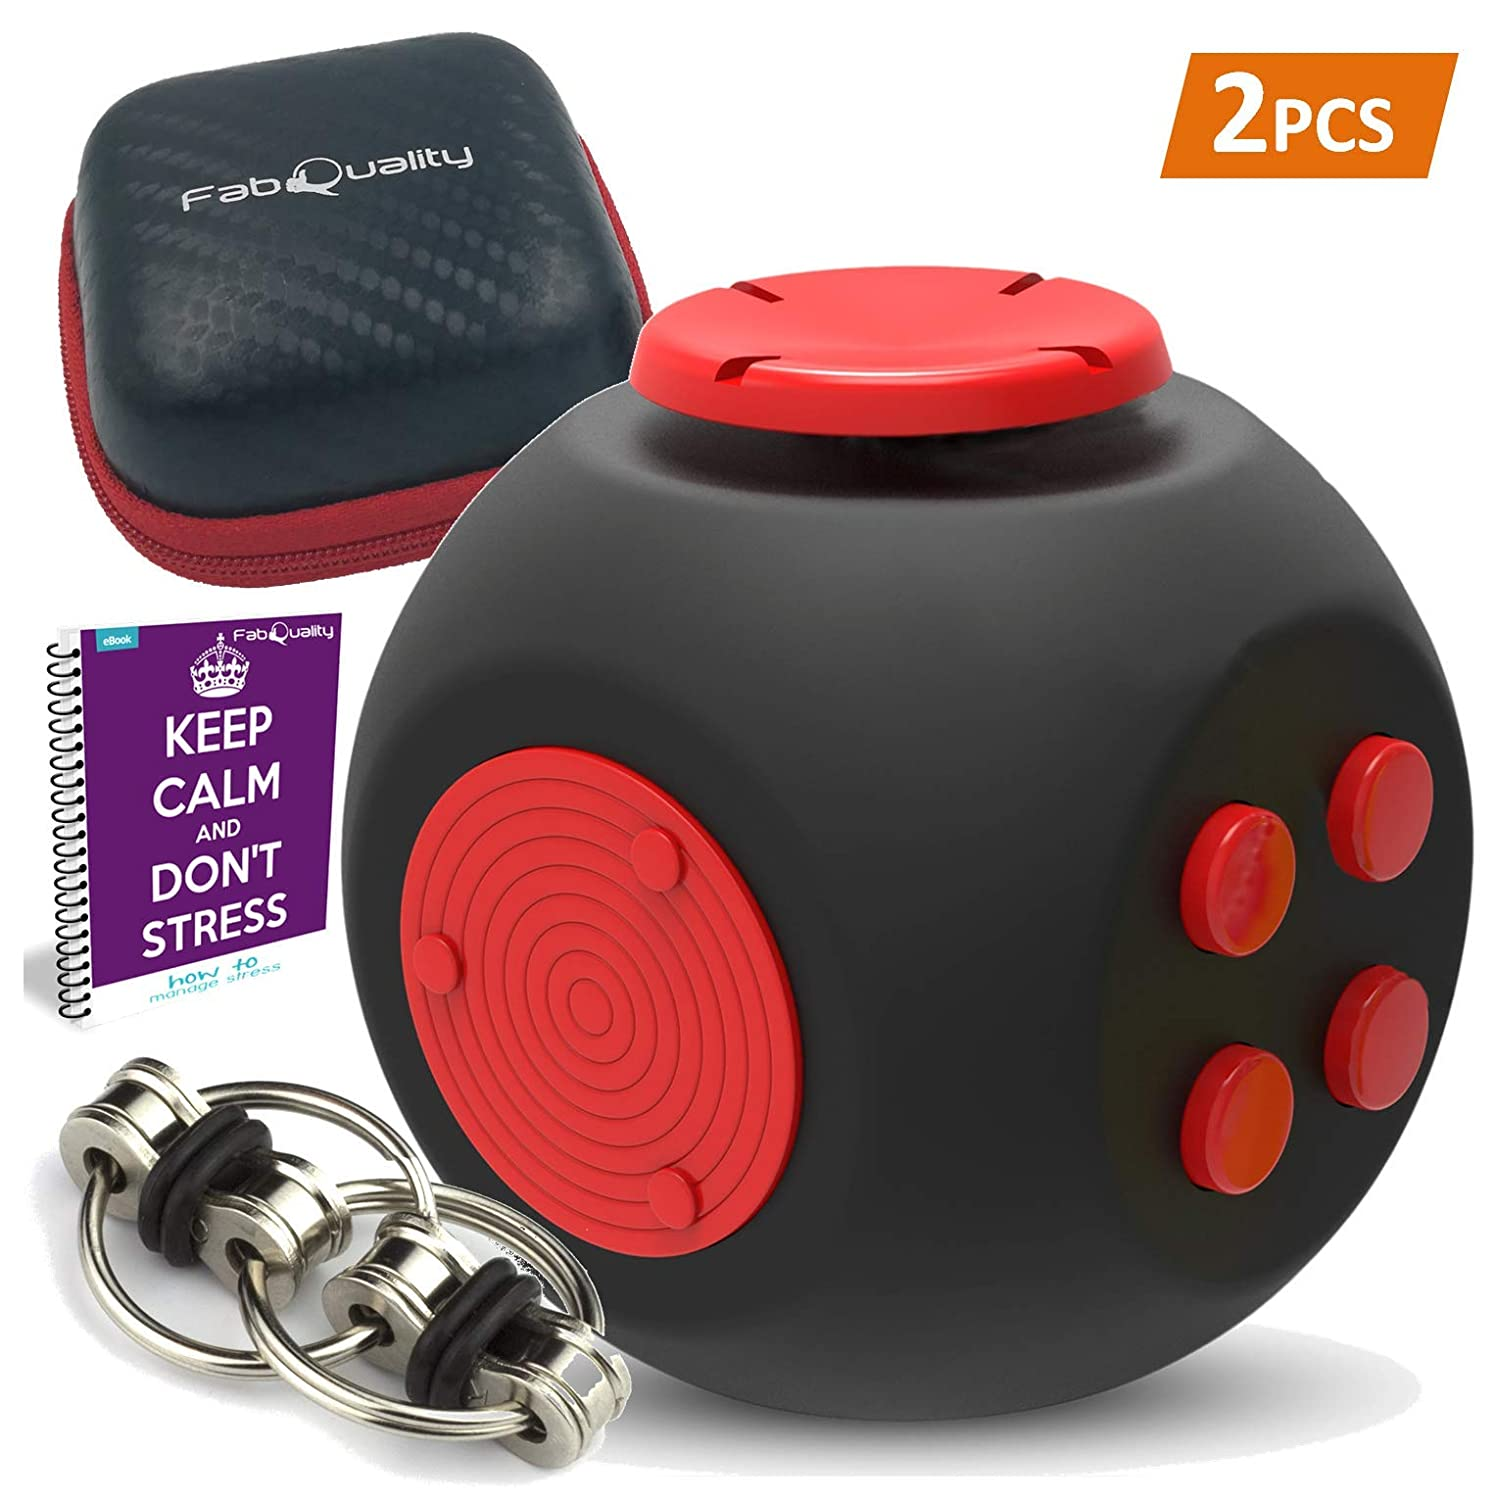 2pcs Fidget Cube New & Improved Quality Anxiety Attention Toy with Minion Key Chain + Gift Box + eBook inc - Relieves Stress and Anxiety and Relax for Children + Adults